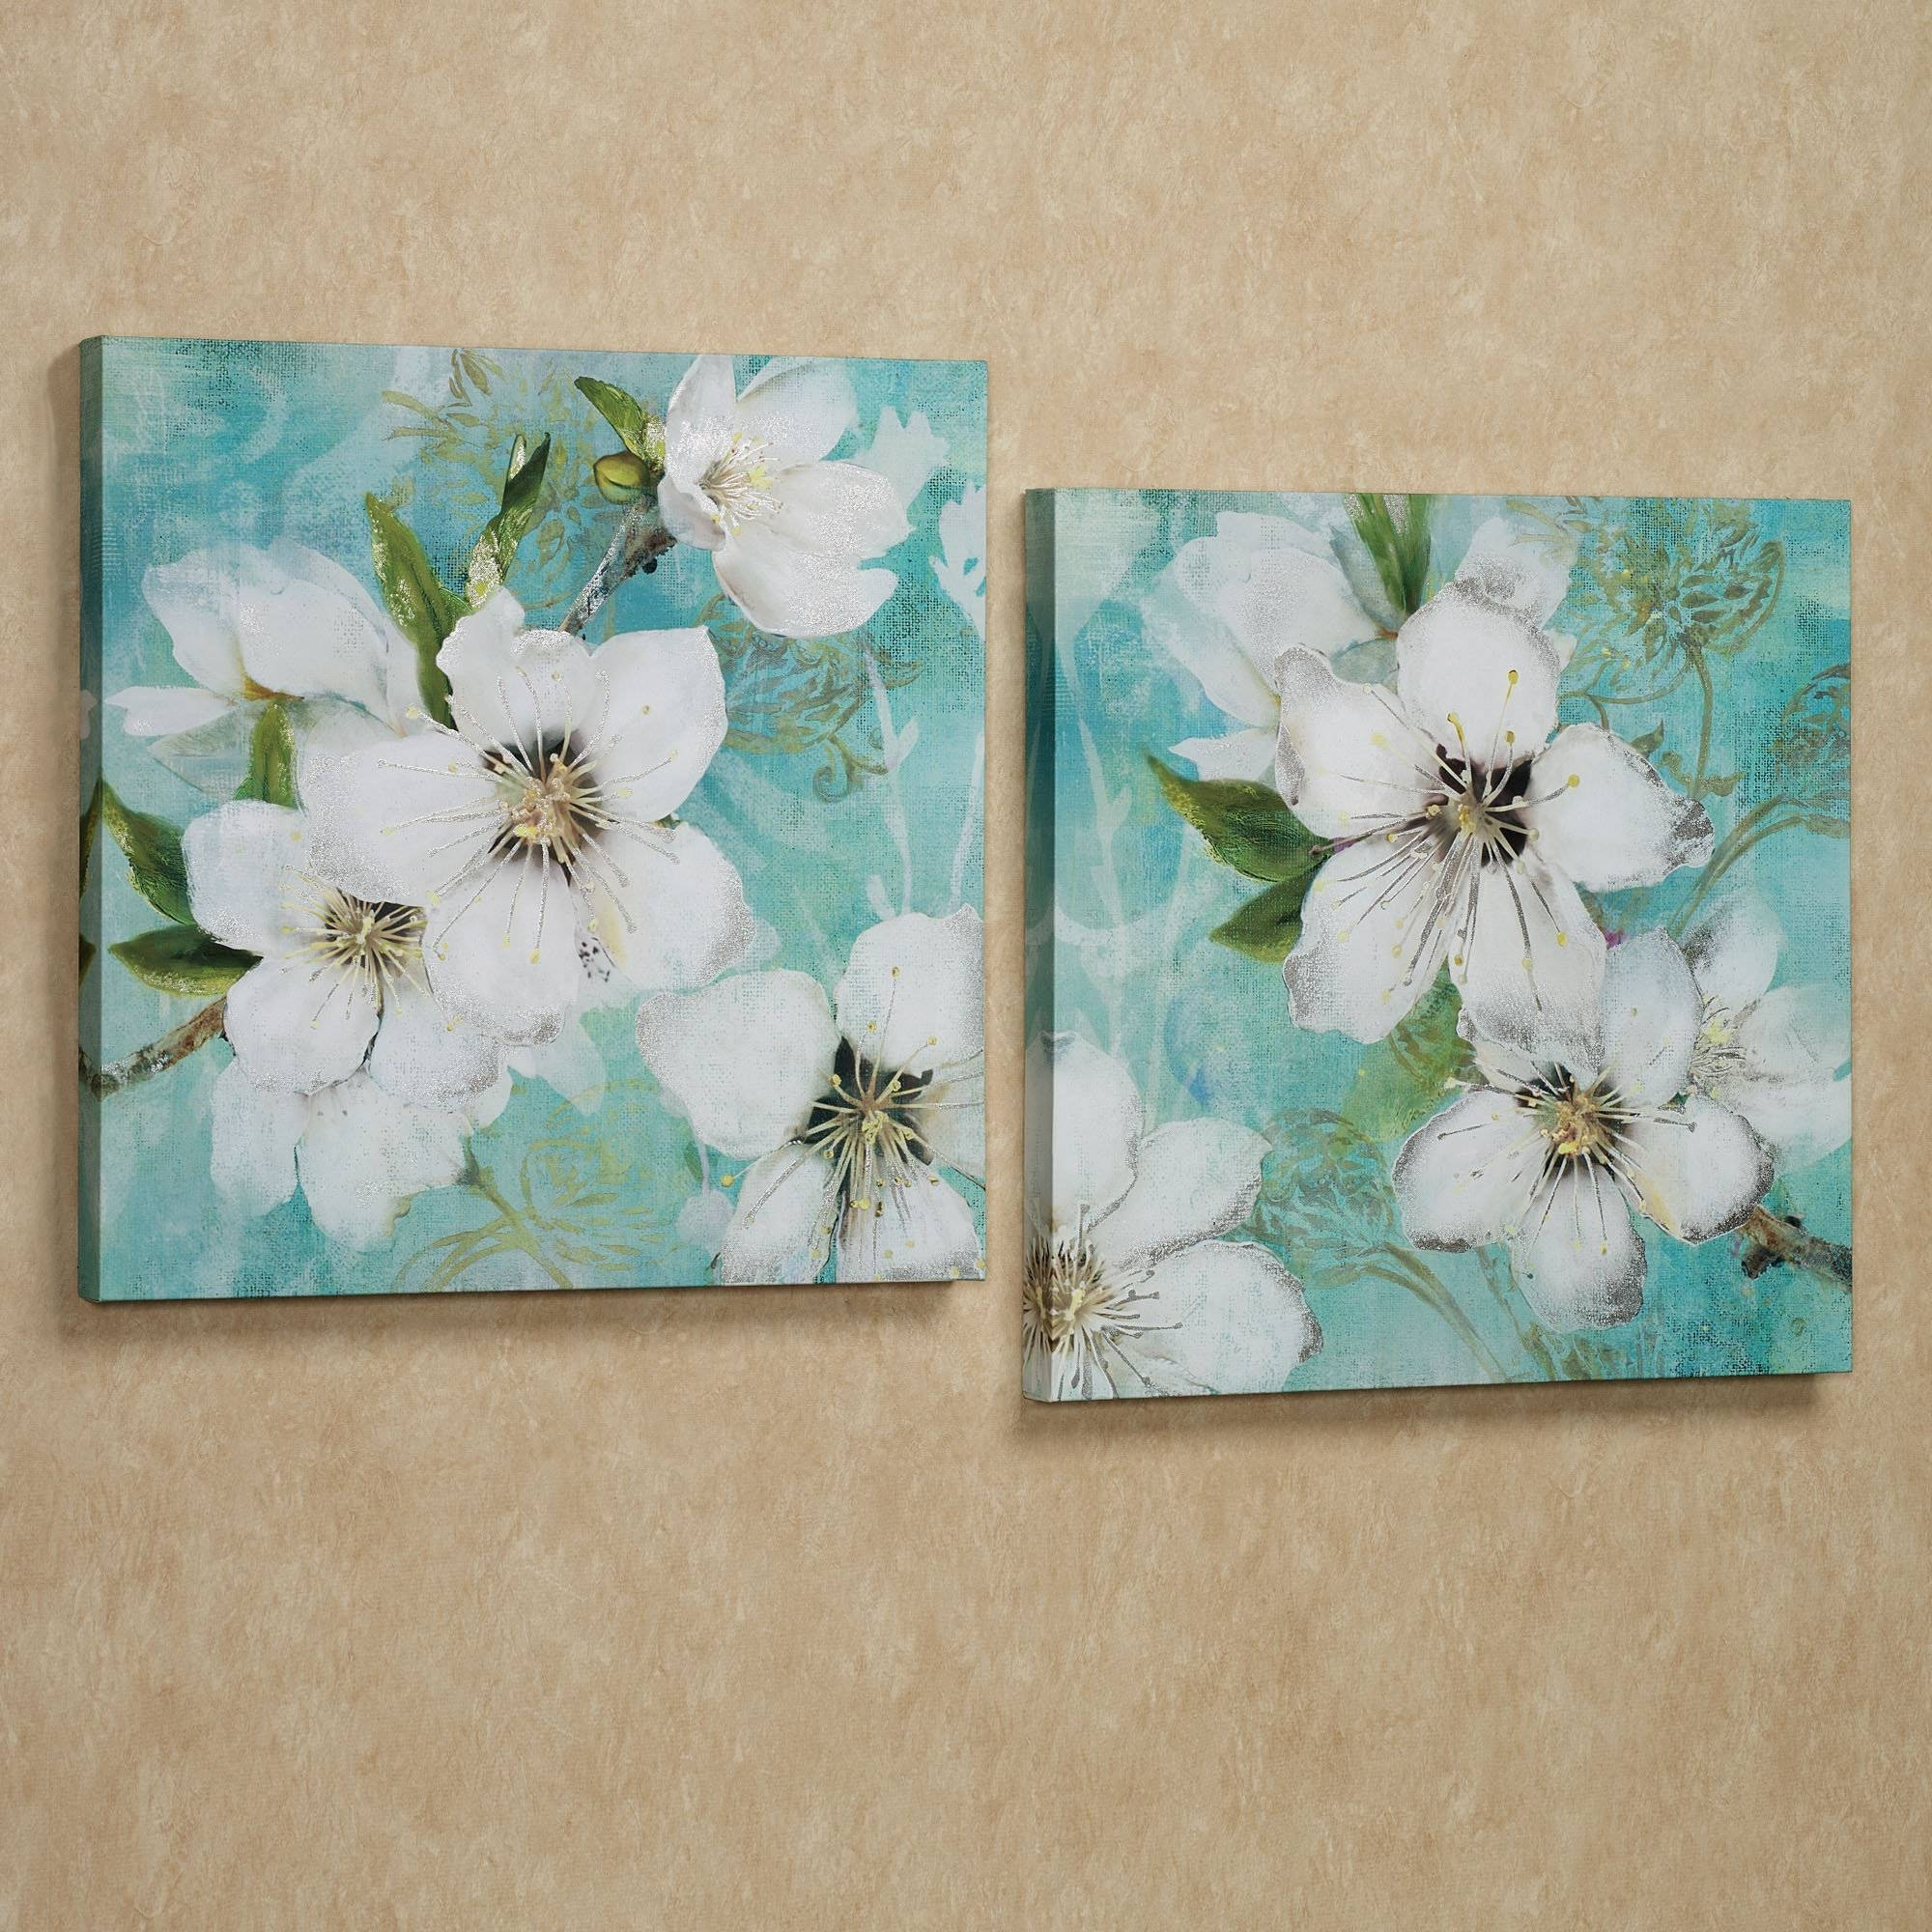 Wall Art Designs: Awesome Floral Wall Art Canvas Floral Wall Art Pertaining To Most Current Floral Wall Art Canvas (View 17 of 20)